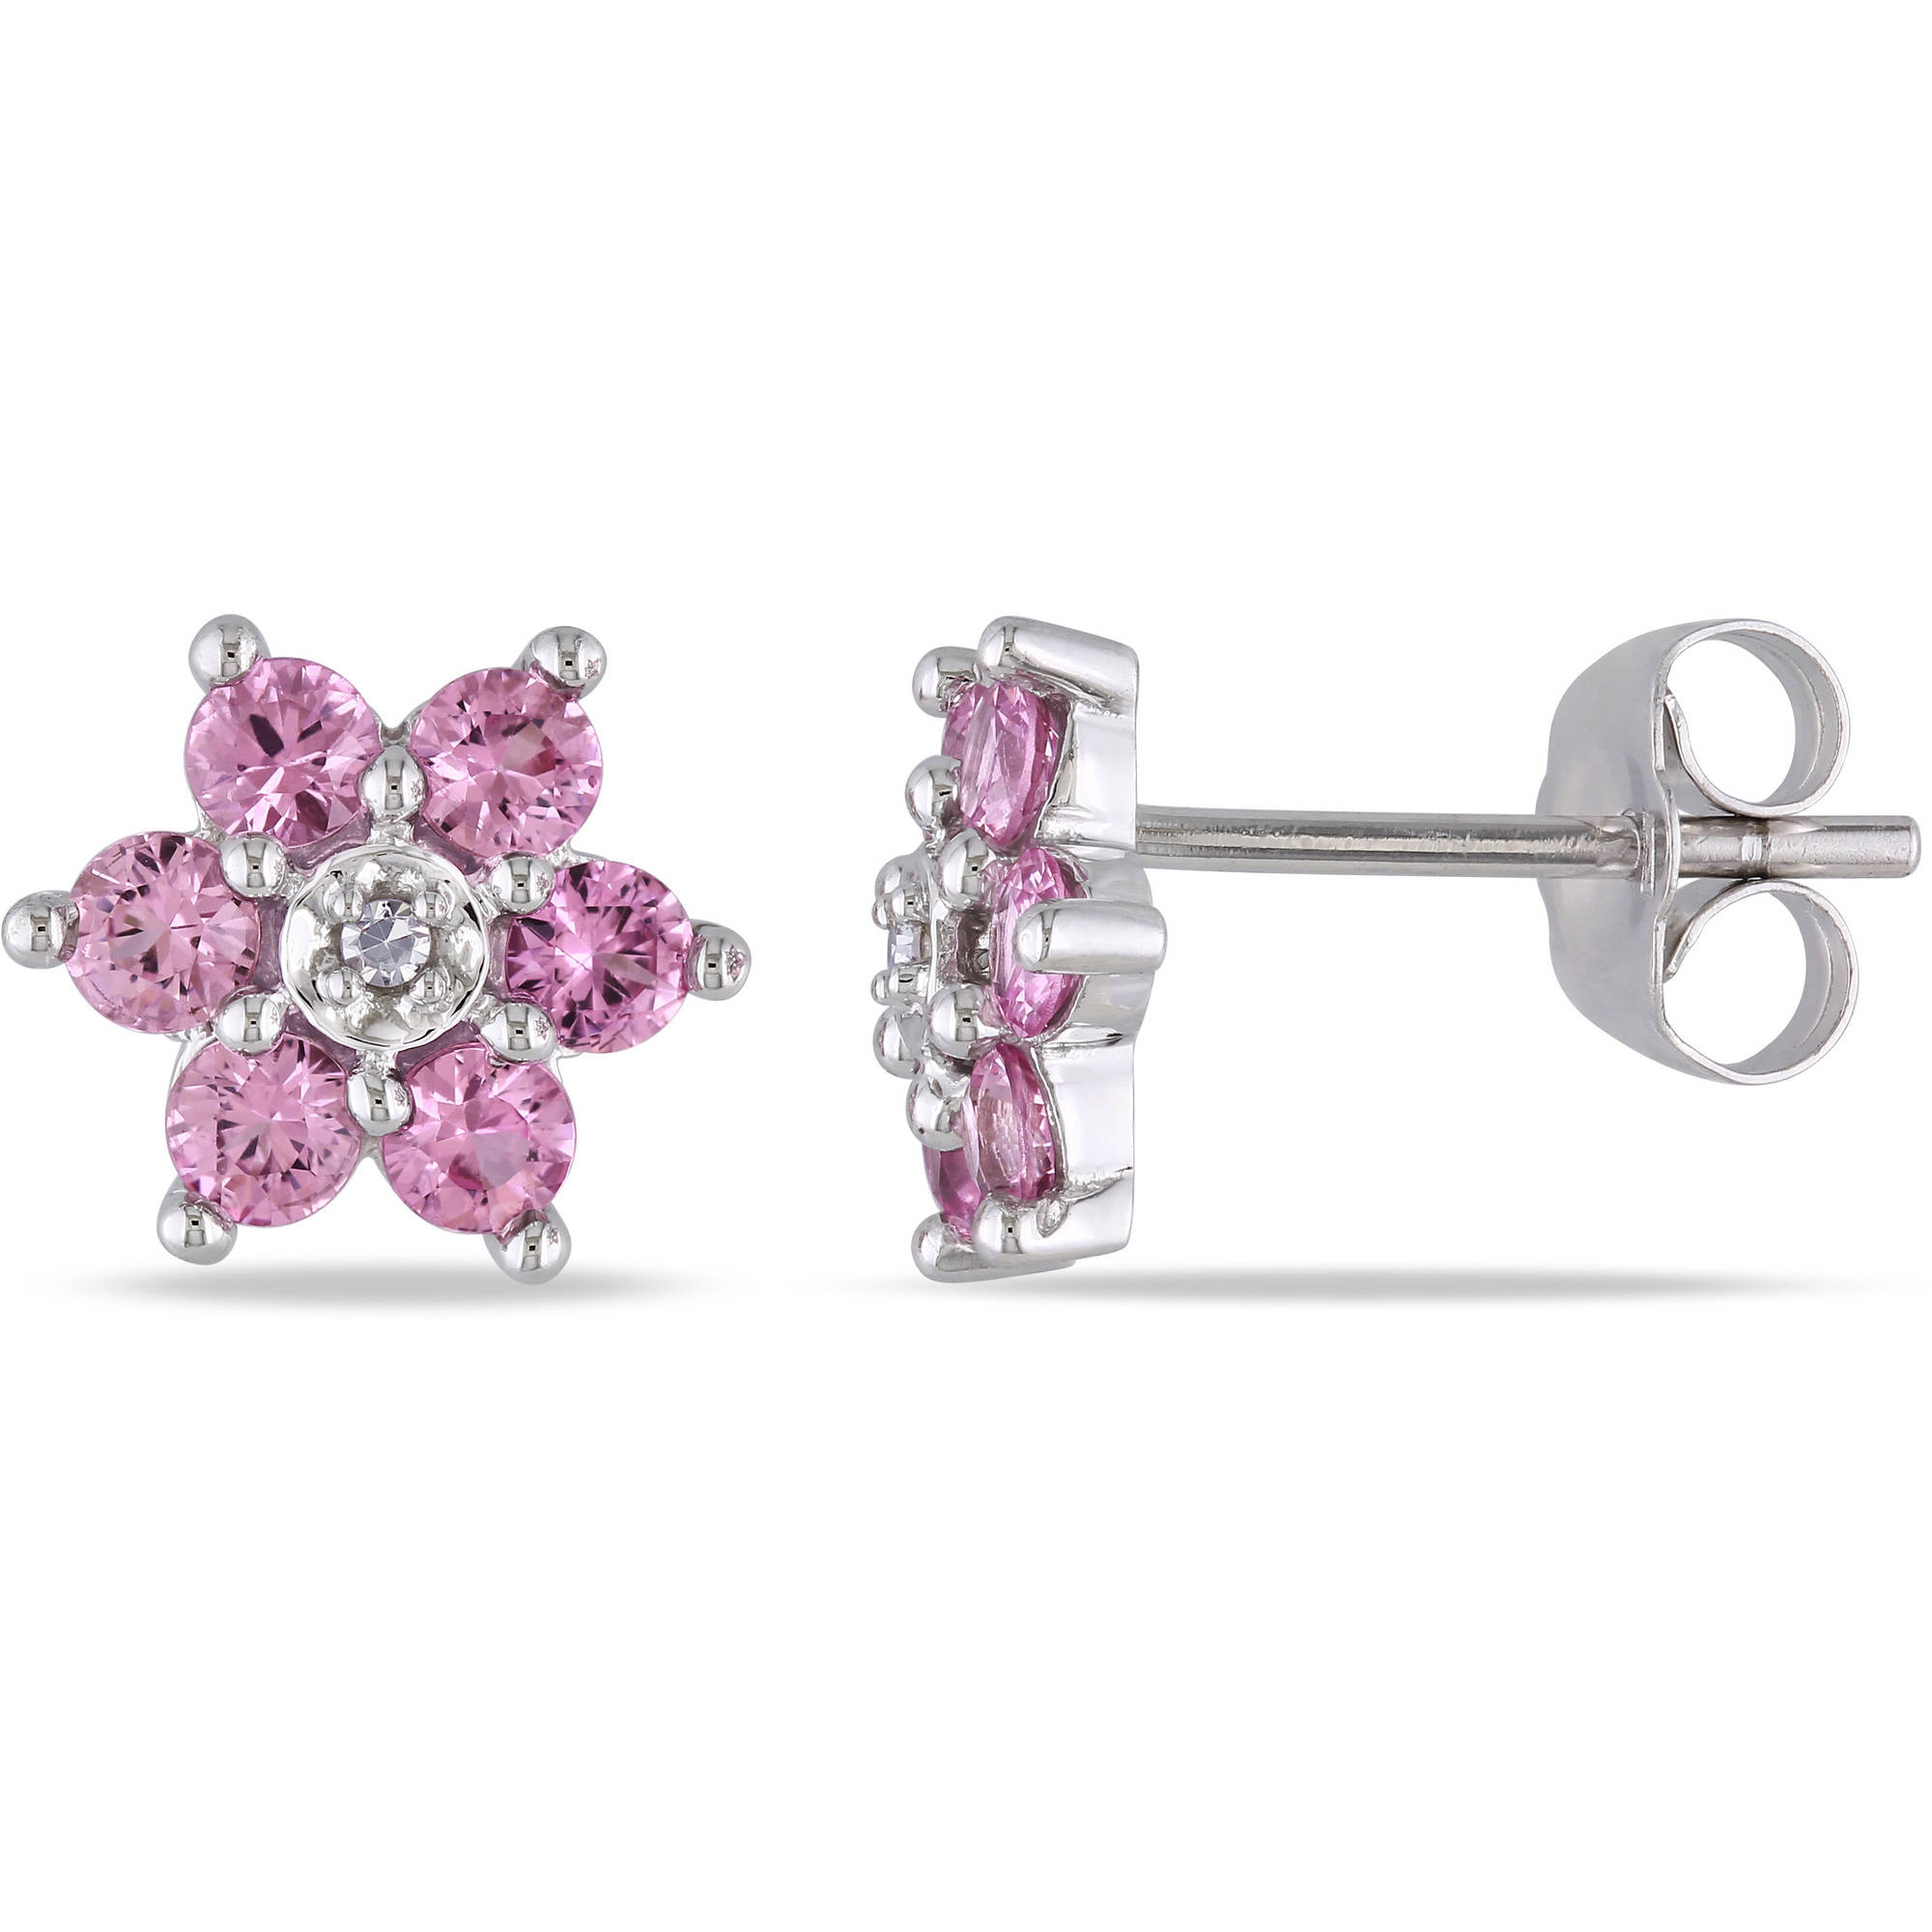 1 Carat T.G.W. Pink Sapphire and Diamond Accent 10kt White Gold Flower Stud Earrings by Delmar Manufacturing LLC